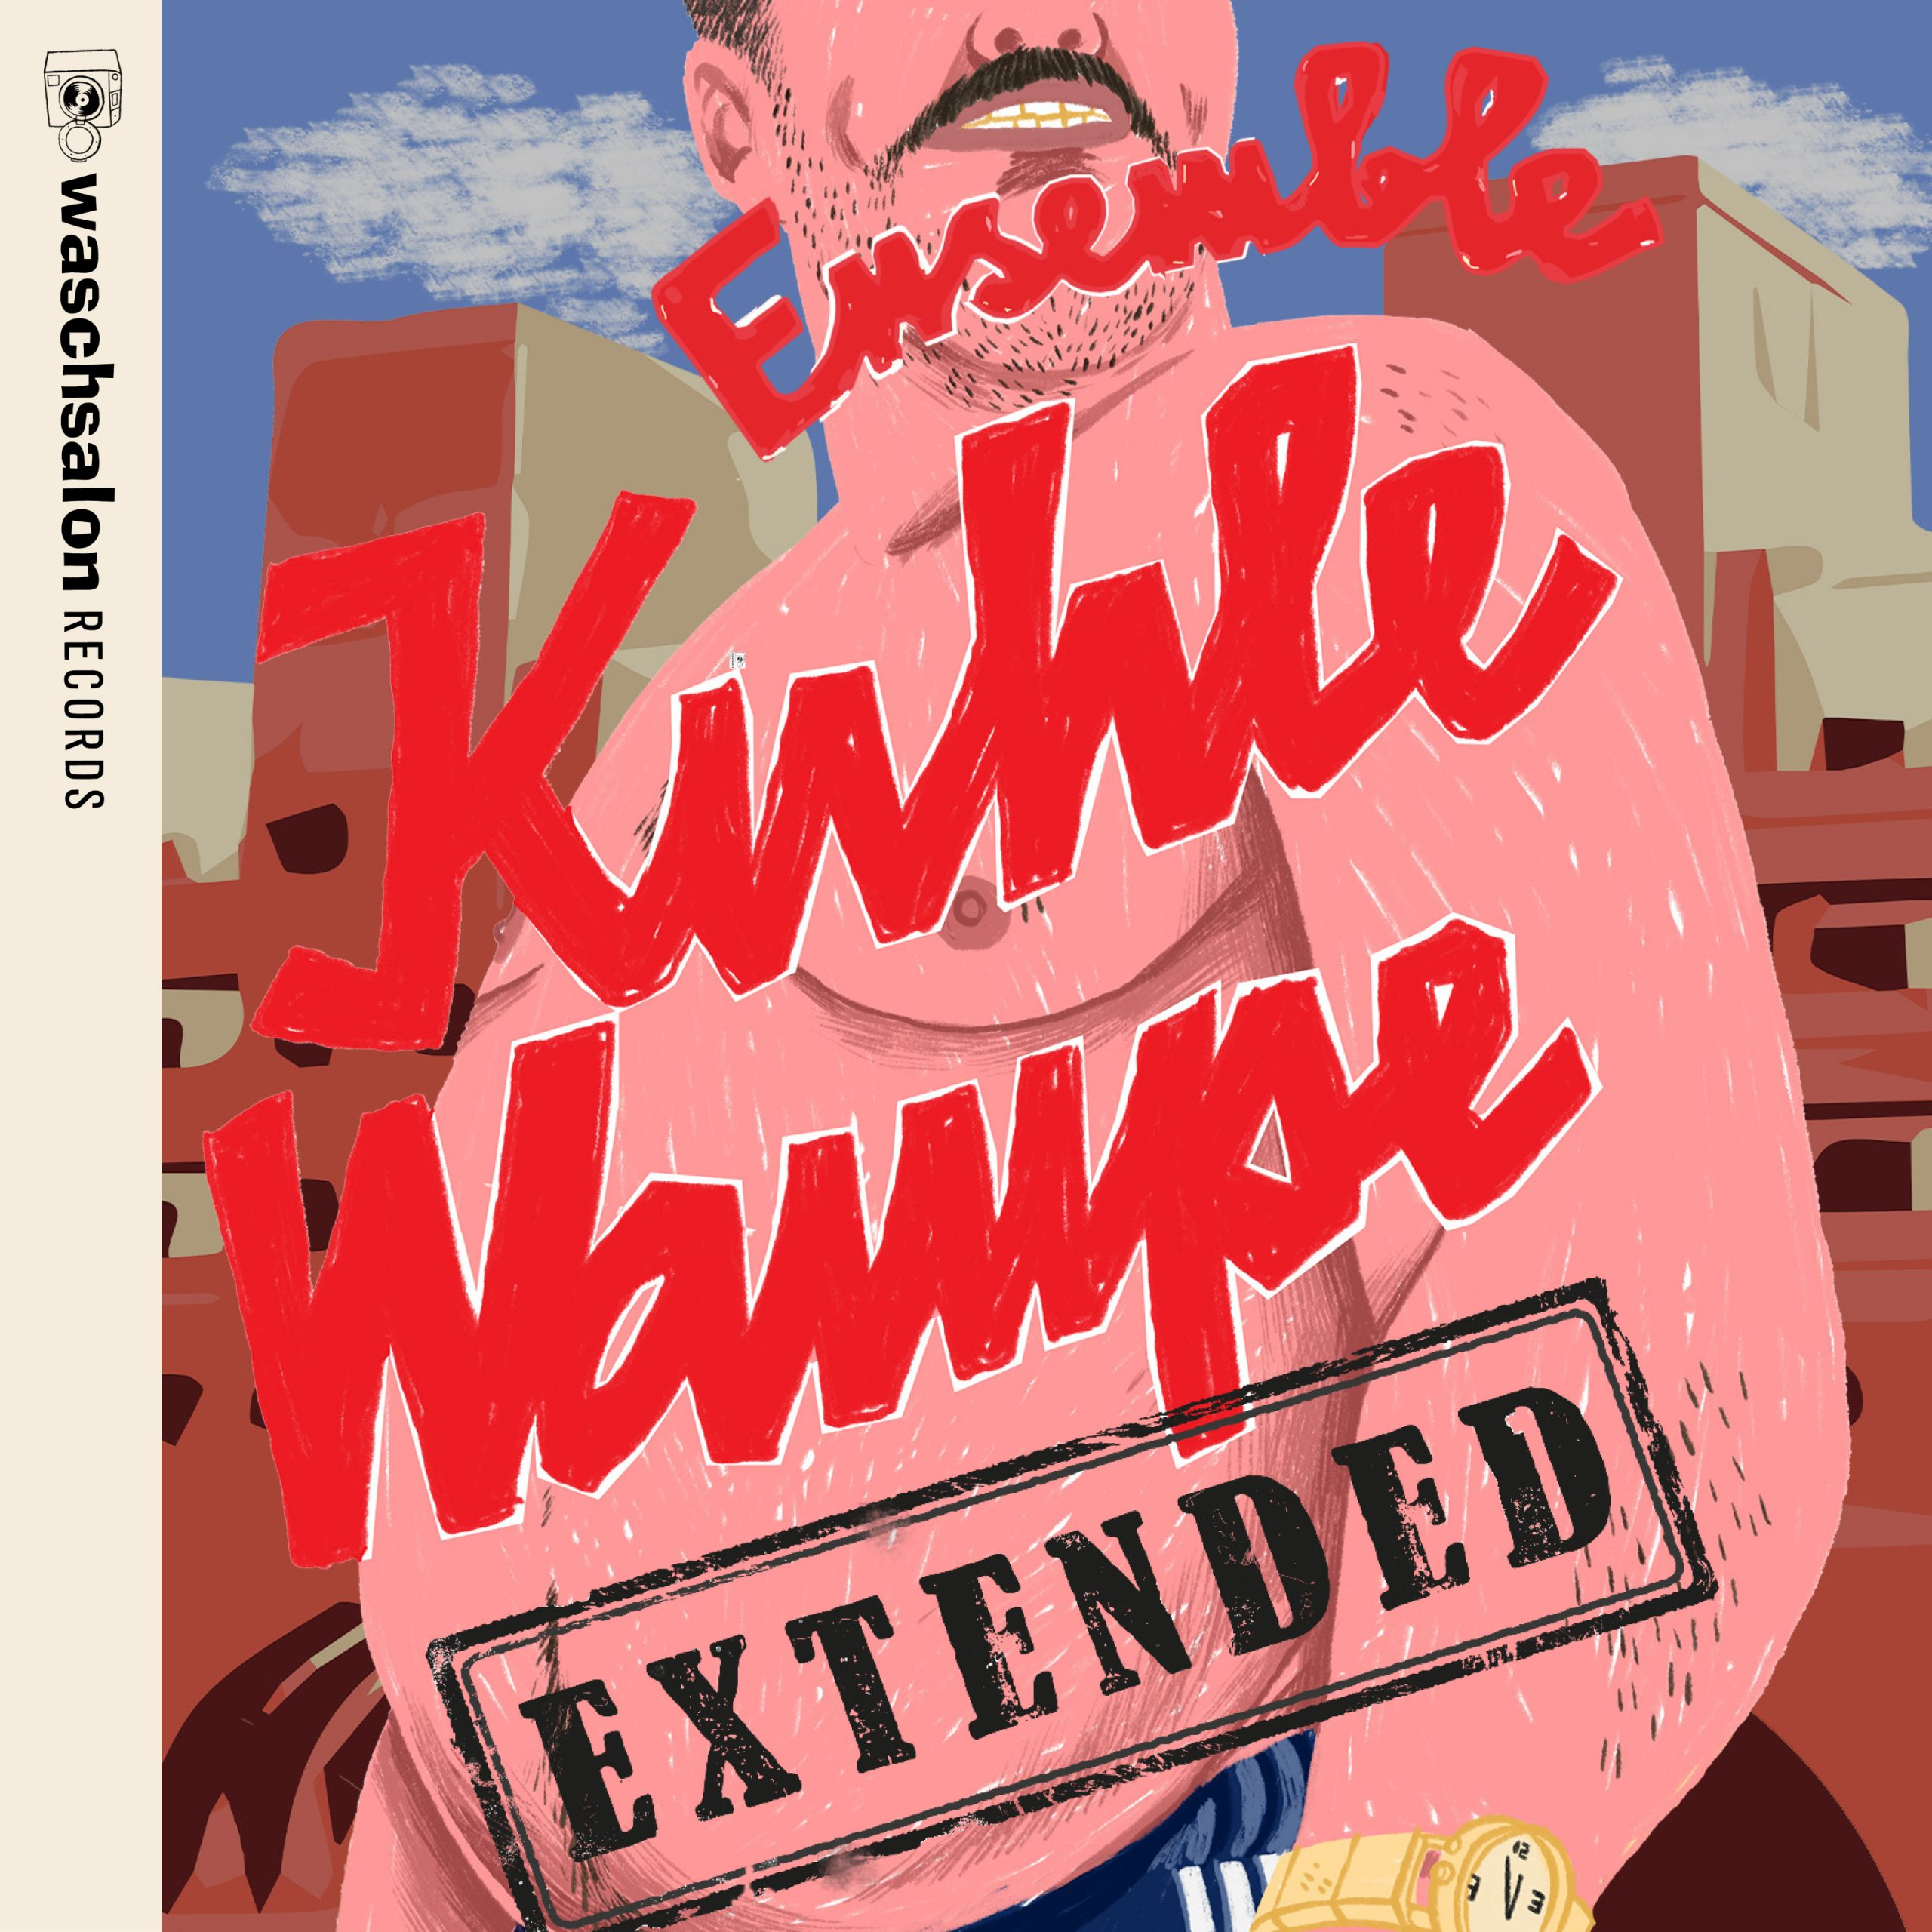 Albumcover_Kuhle_Wampe_EXTENDED_3000x3000px